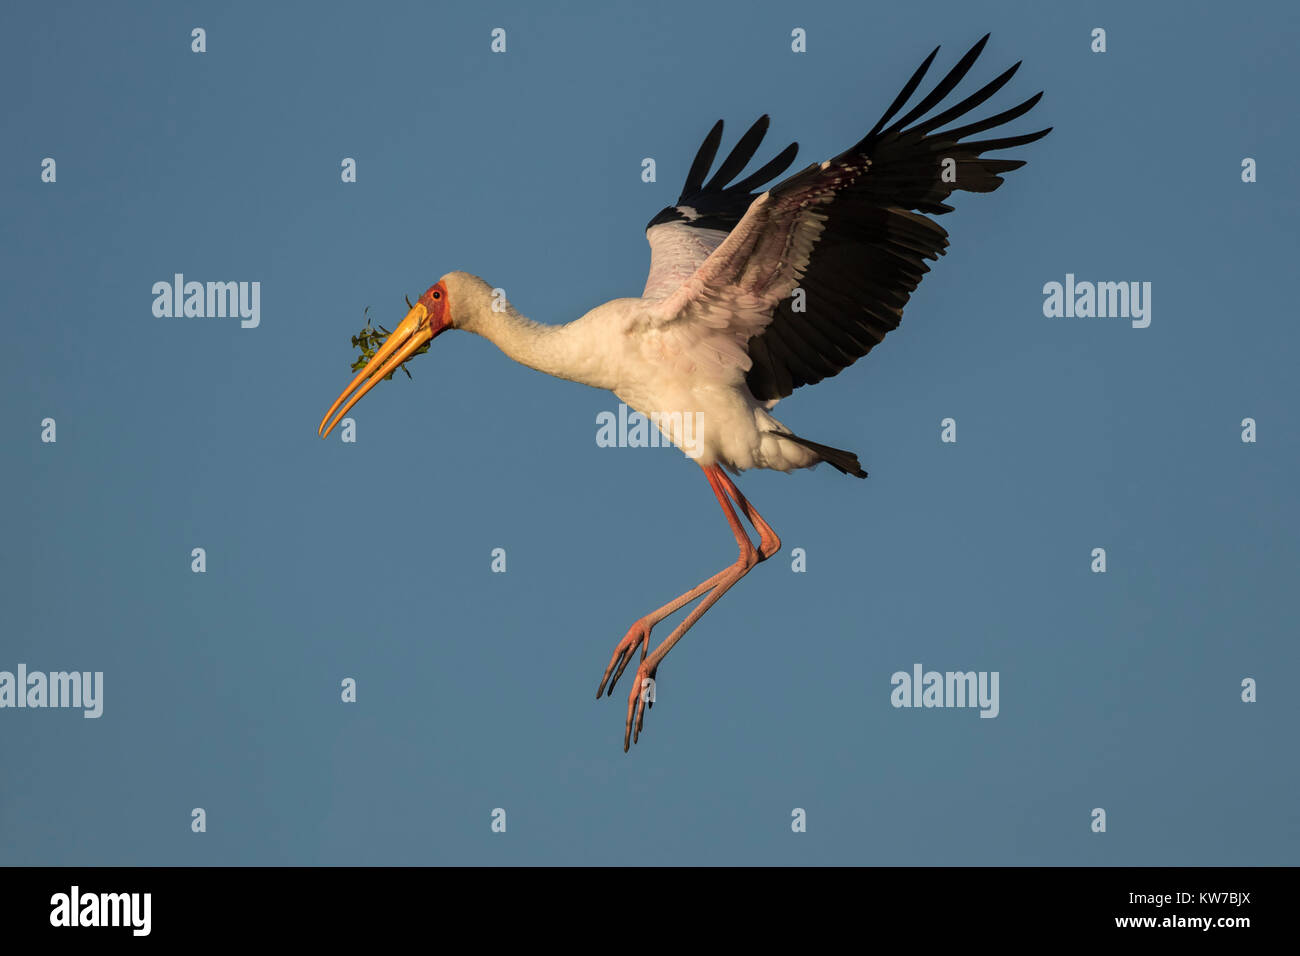 Yellowbilled stork (Mycteria ibis) carrying nesting material, Chobe river, Botswana, Africa, June 2017 - Stock Image